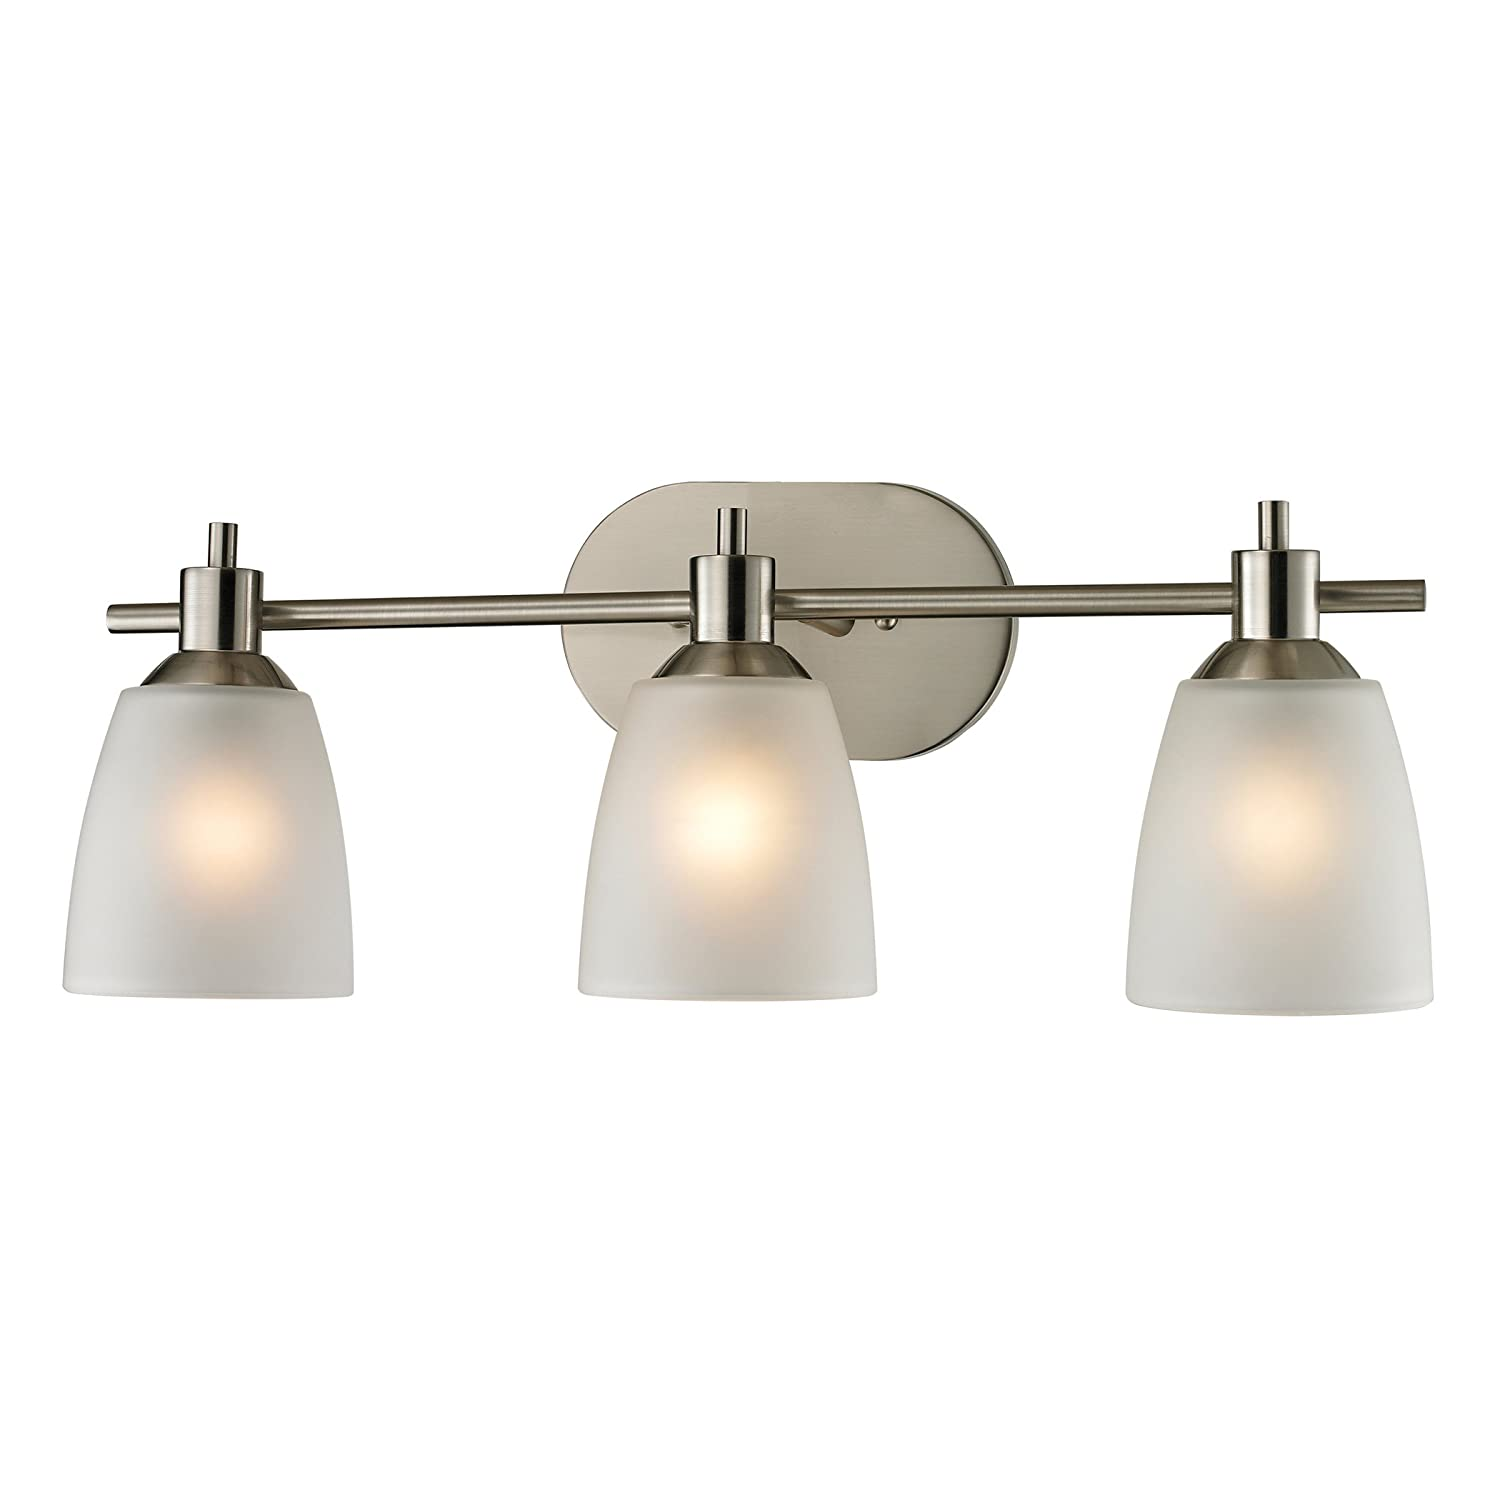 Thomas Lighting Jackson 3 Light Bath Bar, Brushed Nickel   Vanity Lighting  Fixtures   Amazon.com